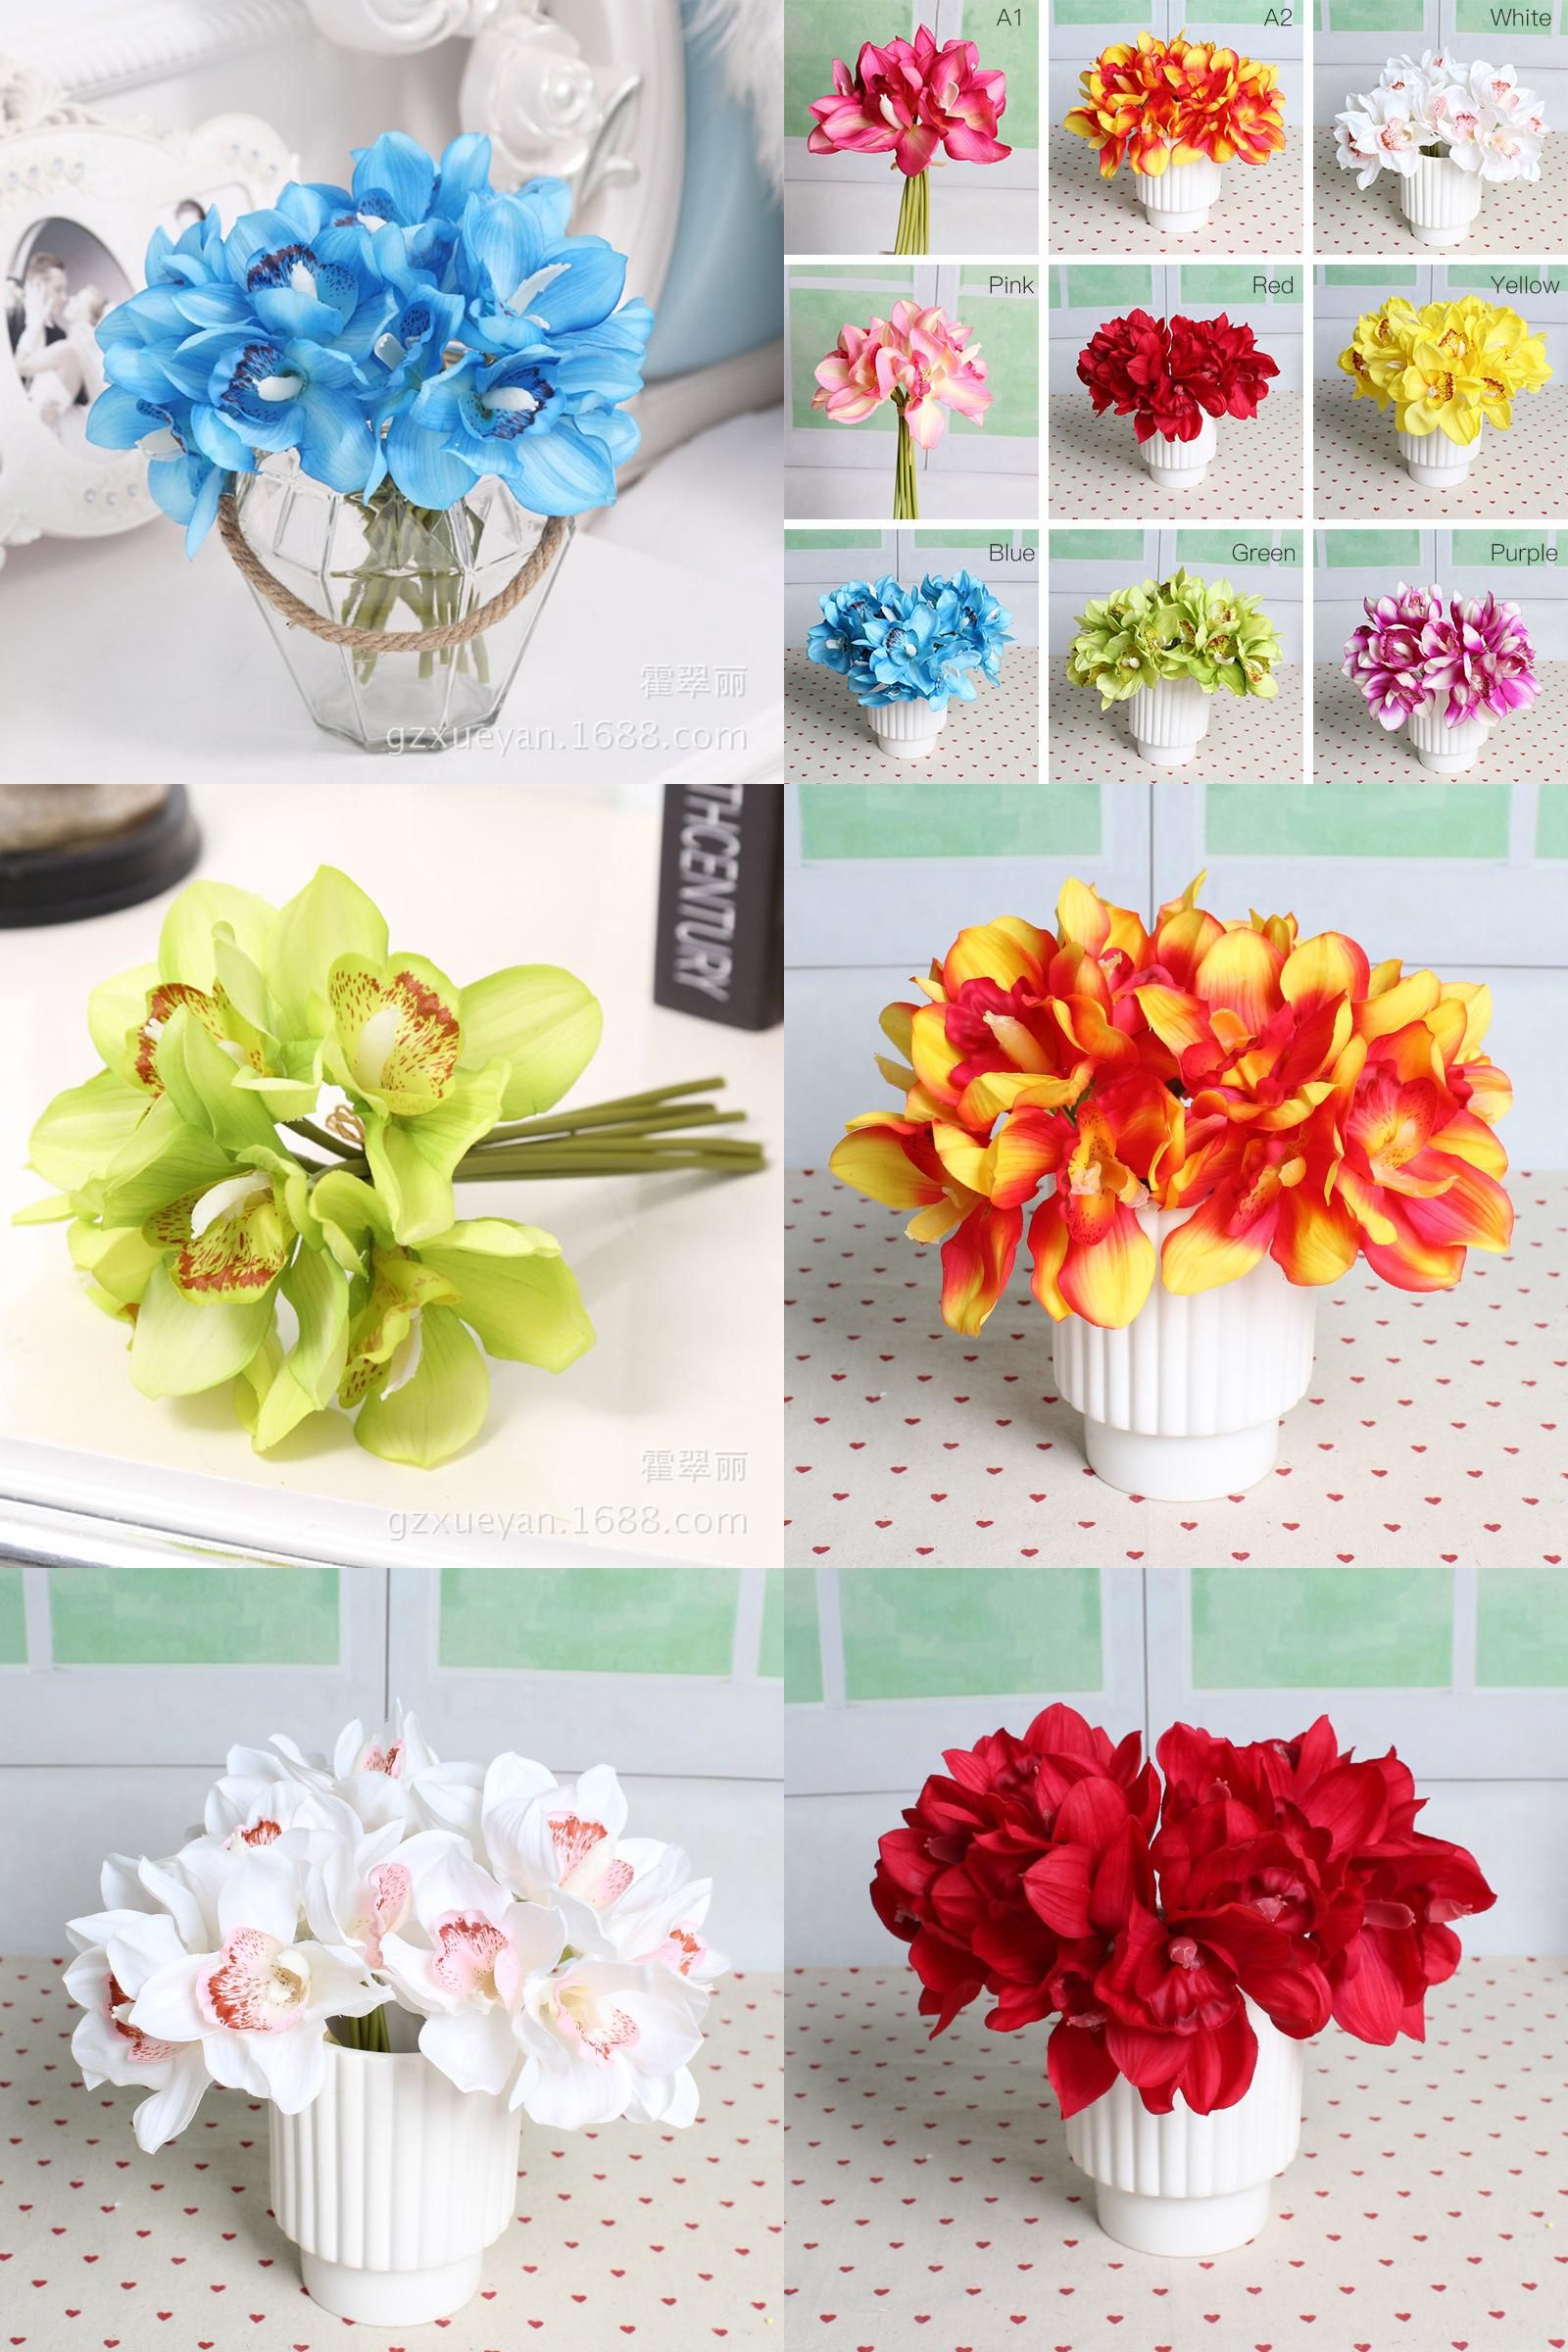 Visit to buy 6 heads real touch cymbidium short shoot table visit to buy 6 heads real touch cymbidium short shoot table decoration artificial orchid flower diy wedding bride hand flowers decor junglespirit Gallery